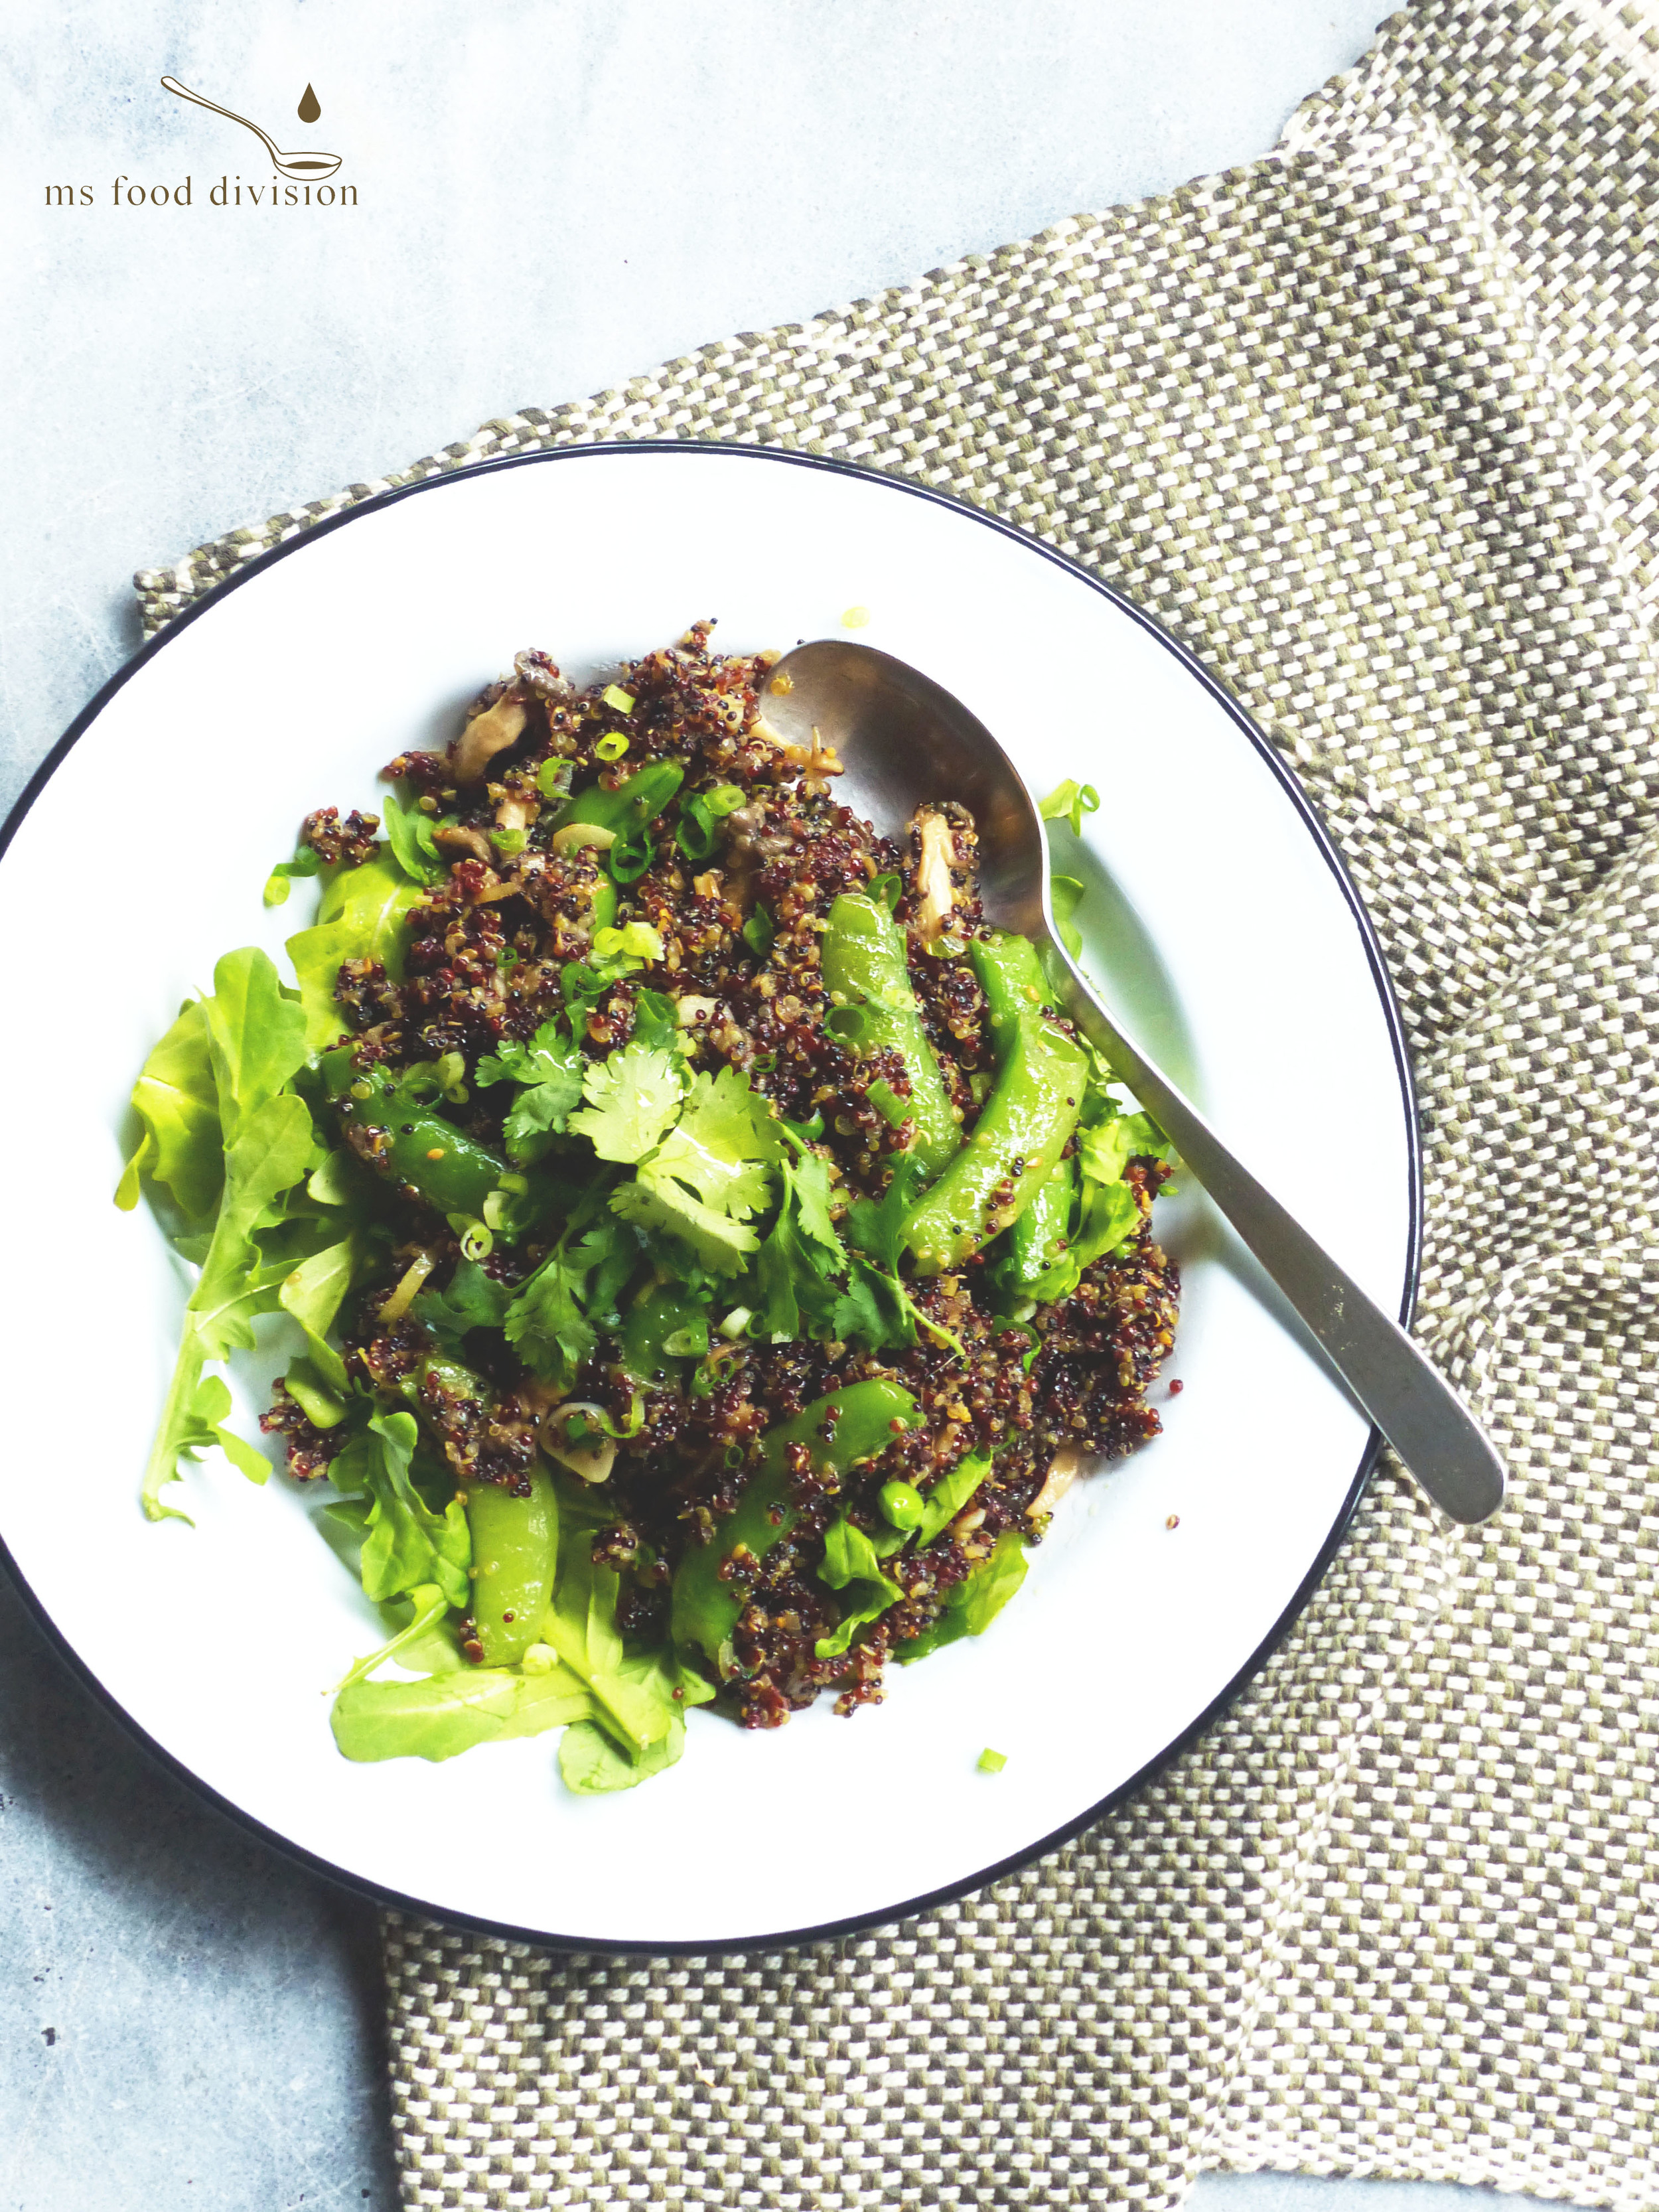 stir fry gingery mushroom & sugar snap peas quinoa salad